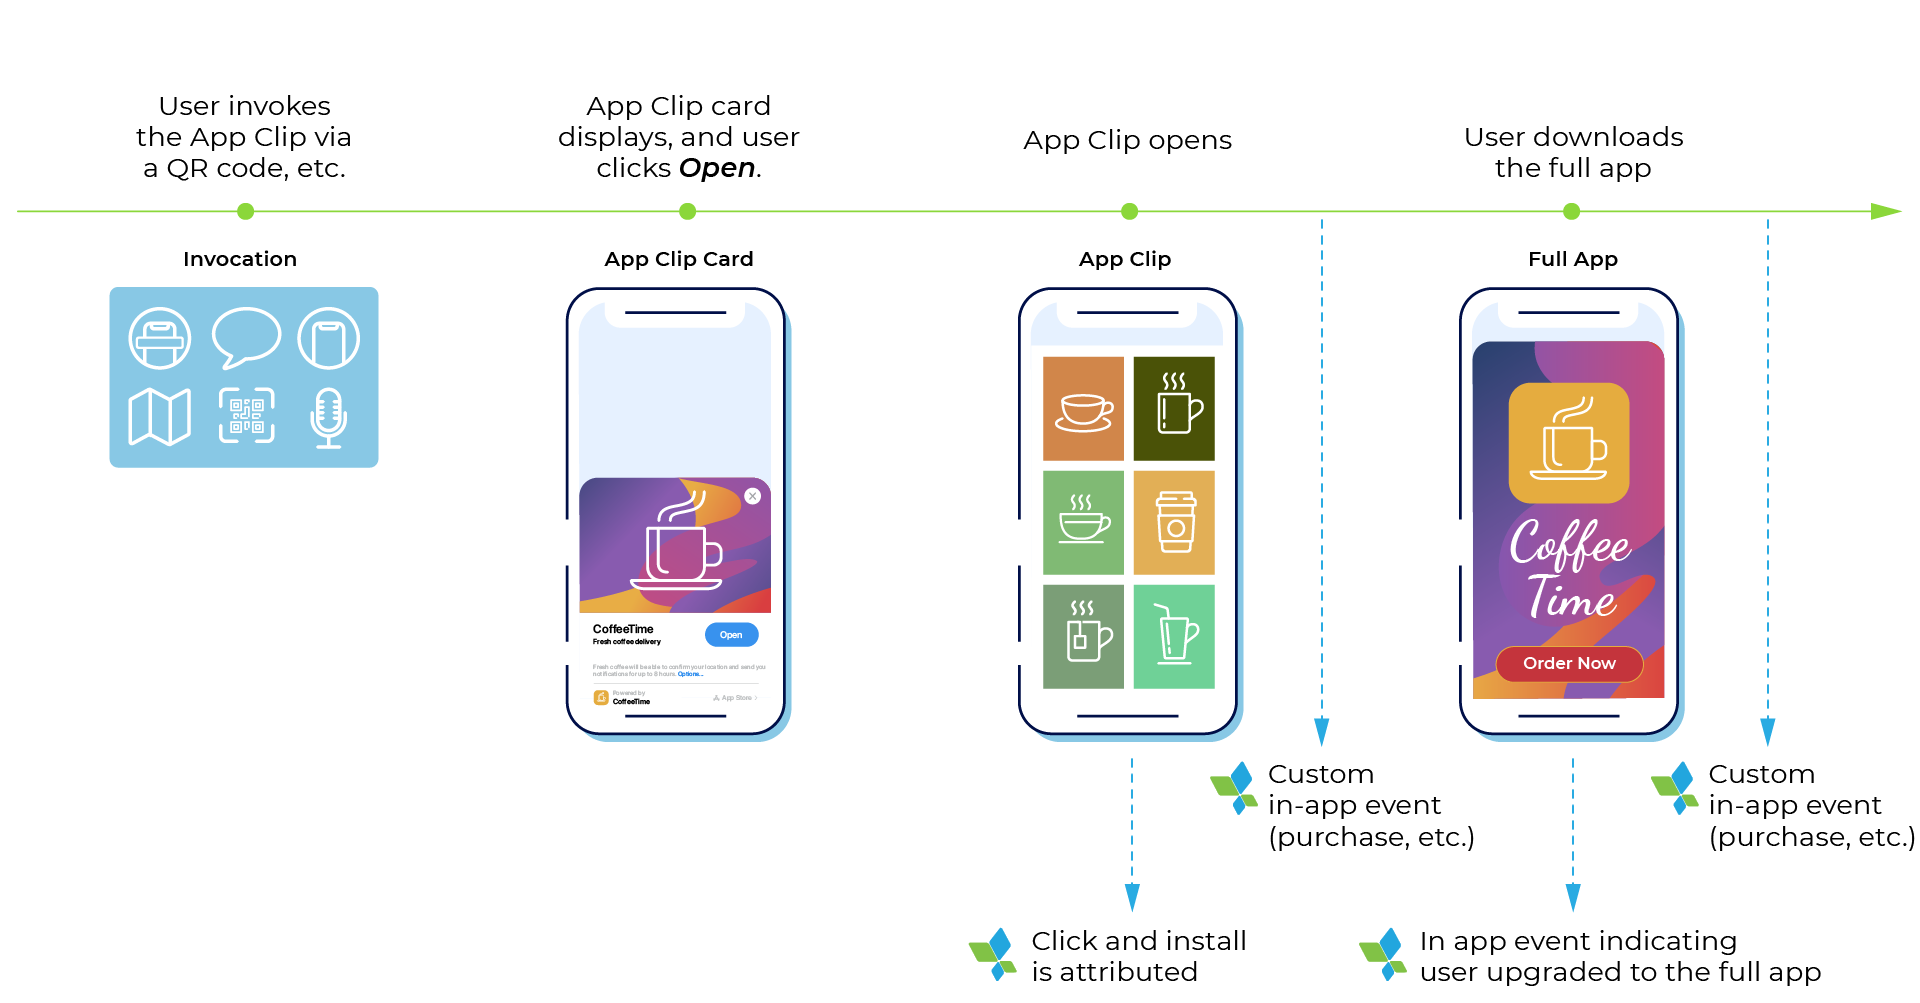 appsflyer attribution solution for app clips